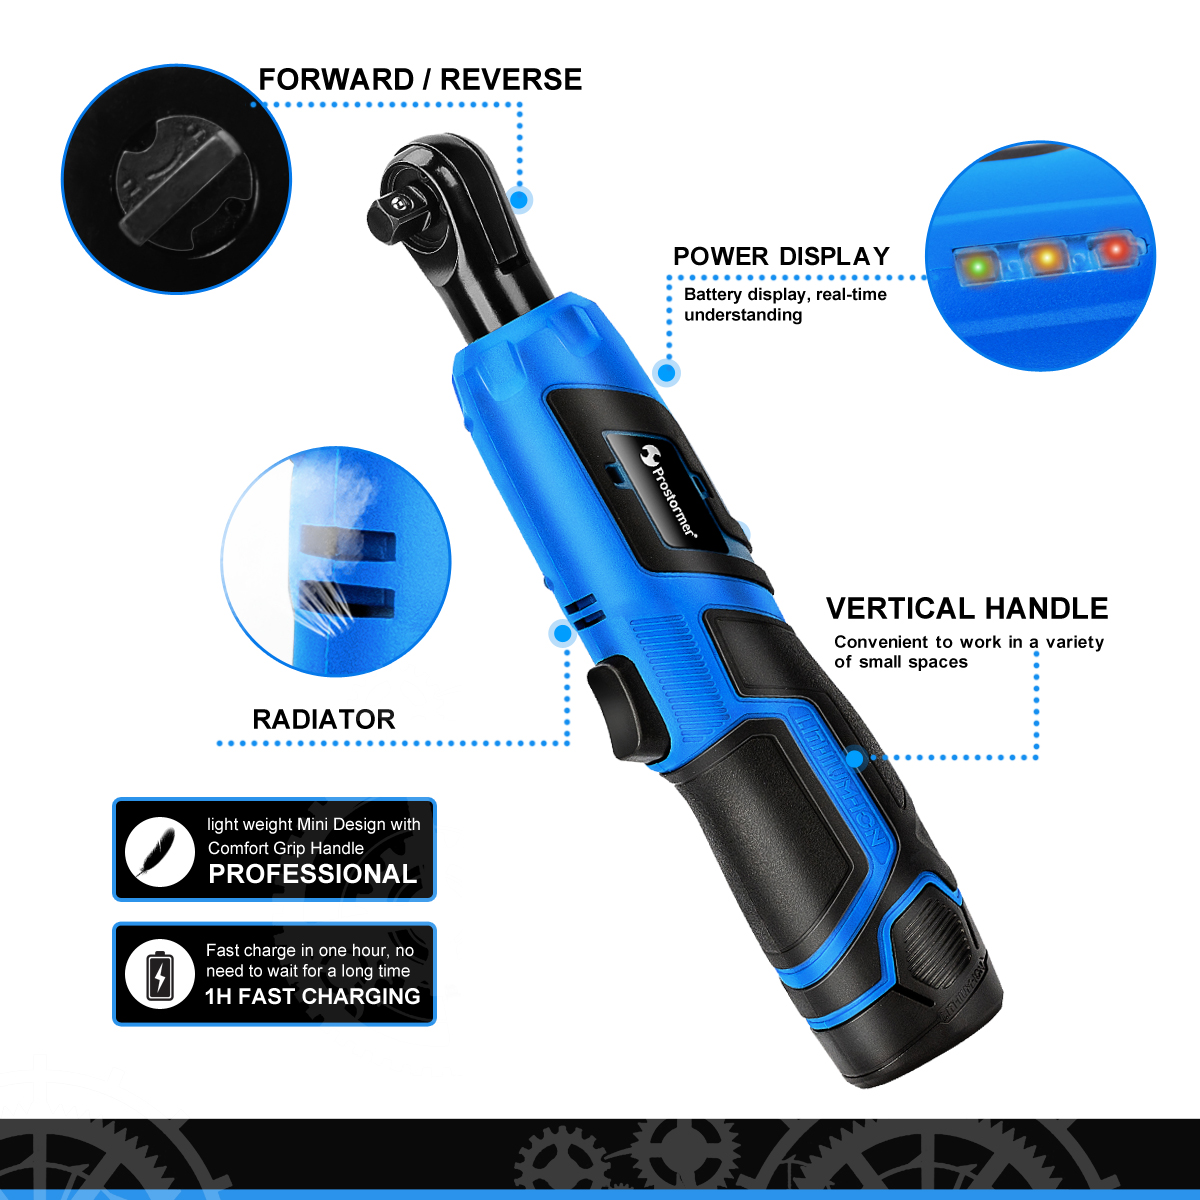 Image 3 - PROSTORMER 12V Electric Wrench Kit 3/8 Cordless Ratchet Wrench Rechargeable Scaffolding 40NM Torque Ratchet With Sockets Tools-in Electric Wrenches from Tools on